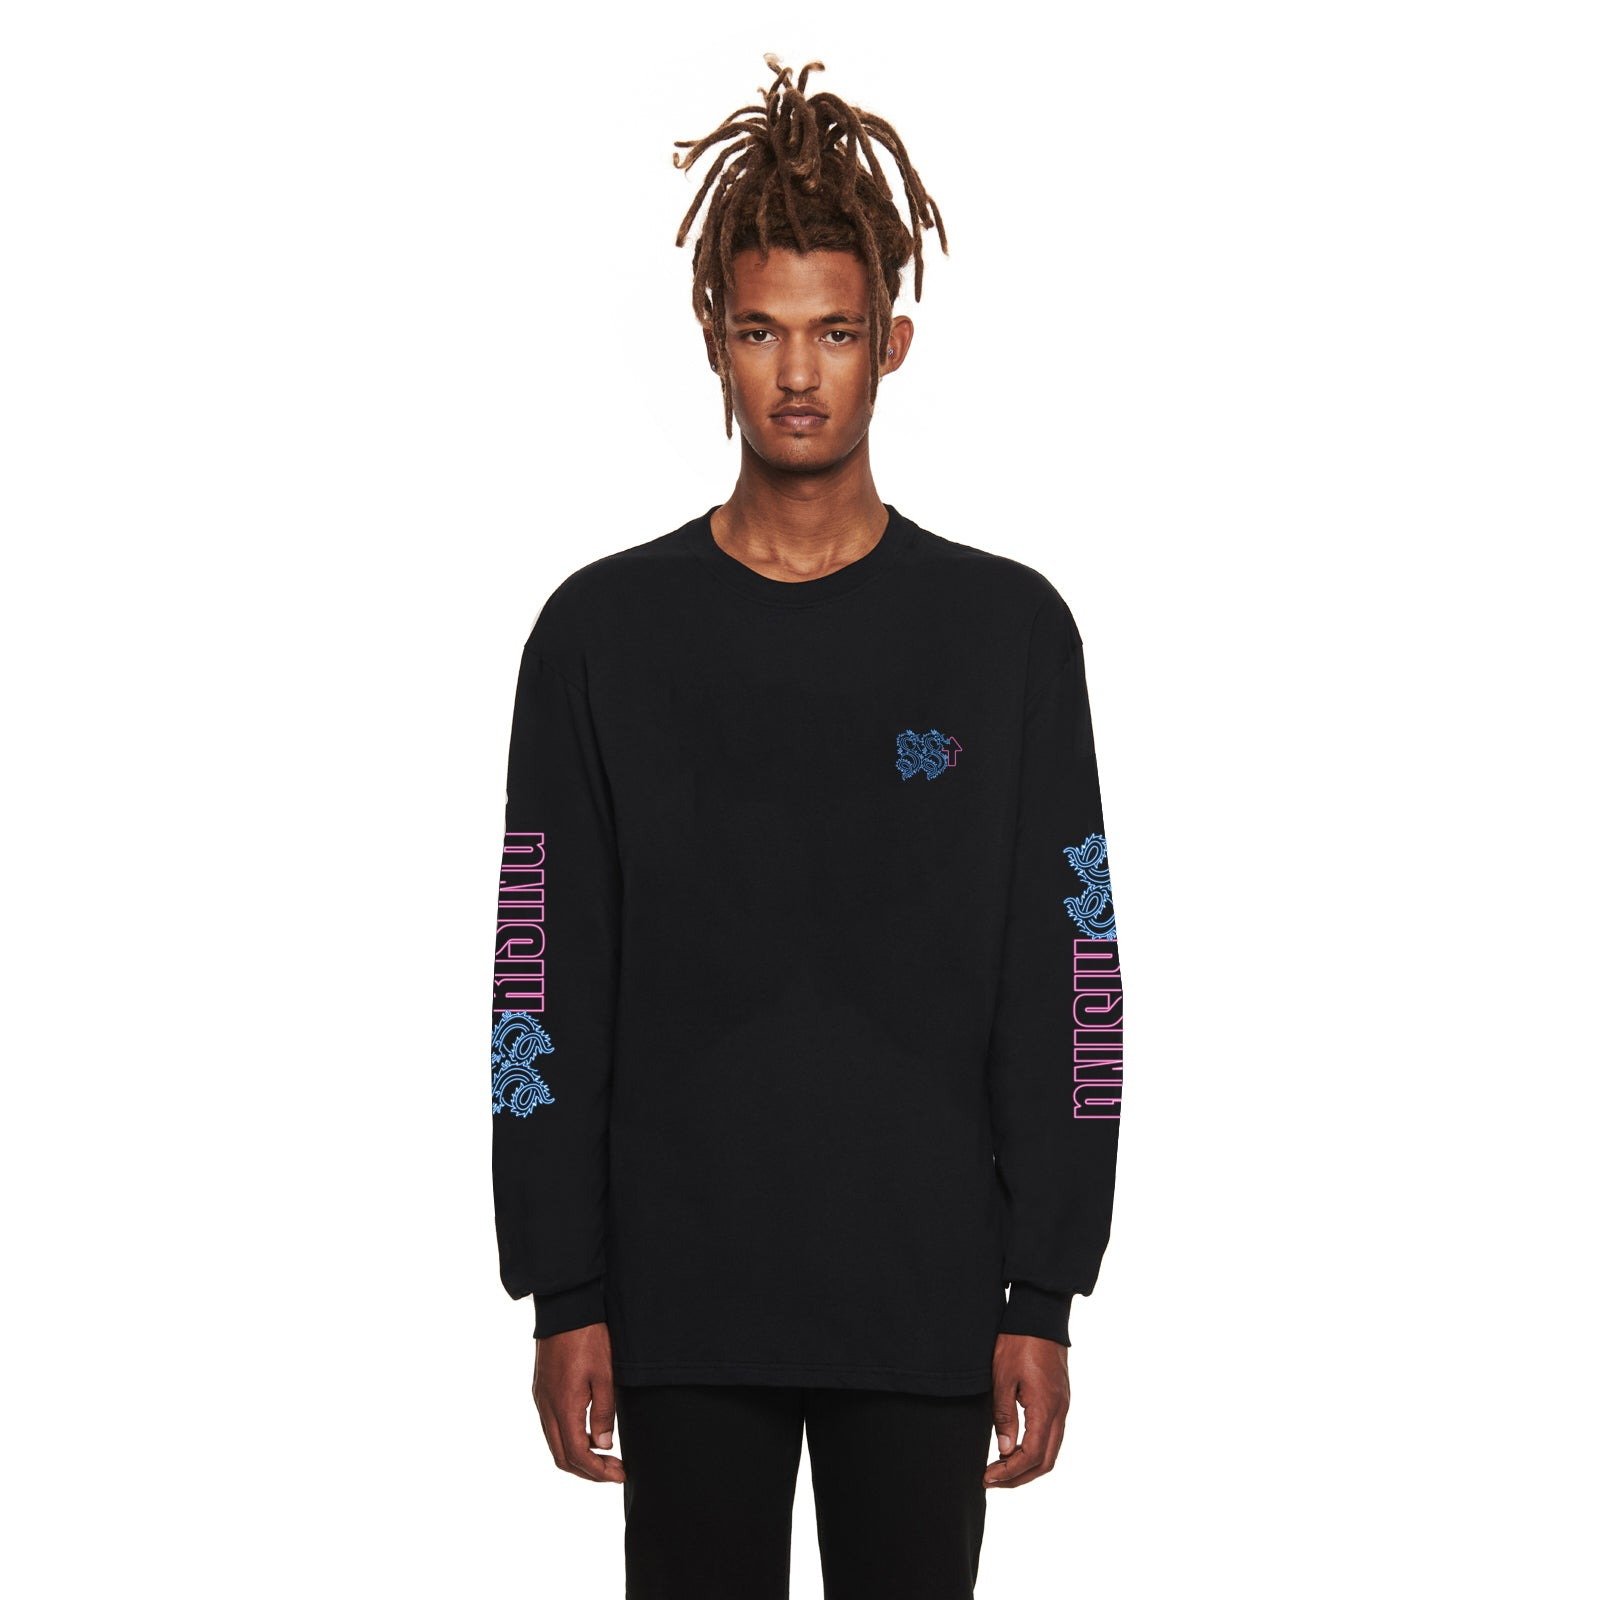 NEON DRAGON GRAPHIC LONG SLEEVE TEE